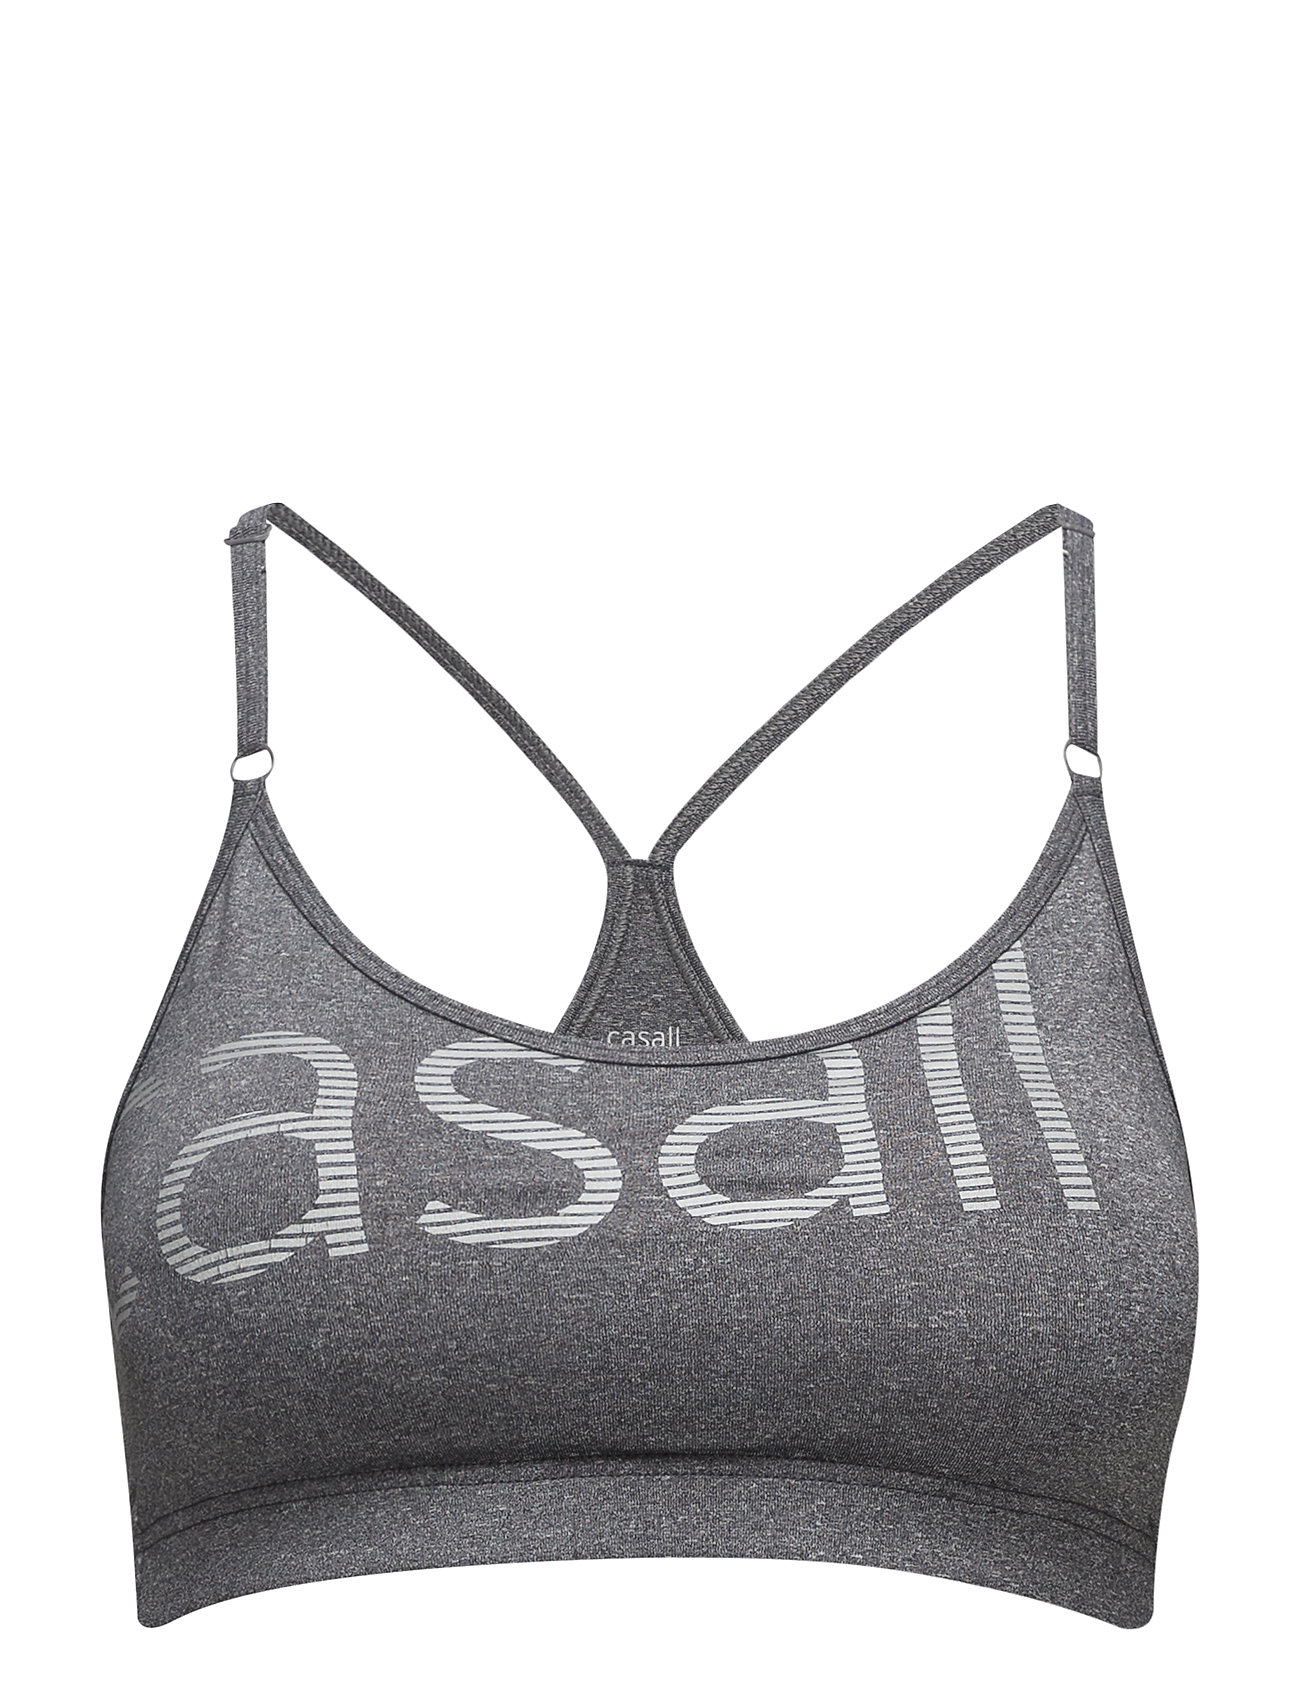 Casall Glorious sports bra - DK GREY MELANGE/SILVER